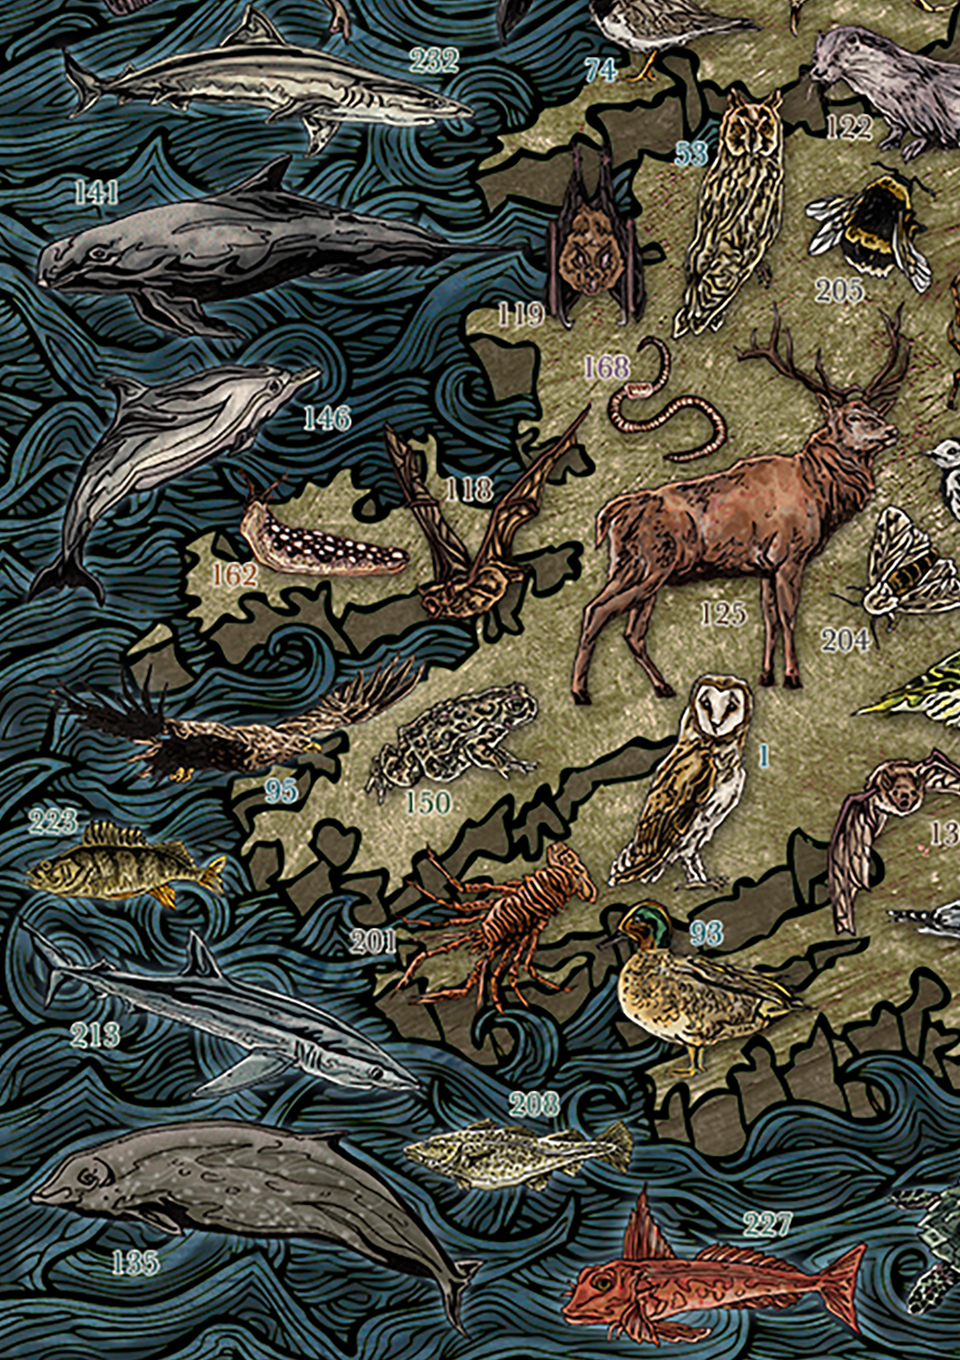 Highly detailed and colourful hand drawn illustrated map of Ireland and Irish wildlife, animals, sea / marine life, fish, birds, insects, mammals, drawn in pen and ink and digitally coloured in Photoshop by Berlin based artist John Rooney